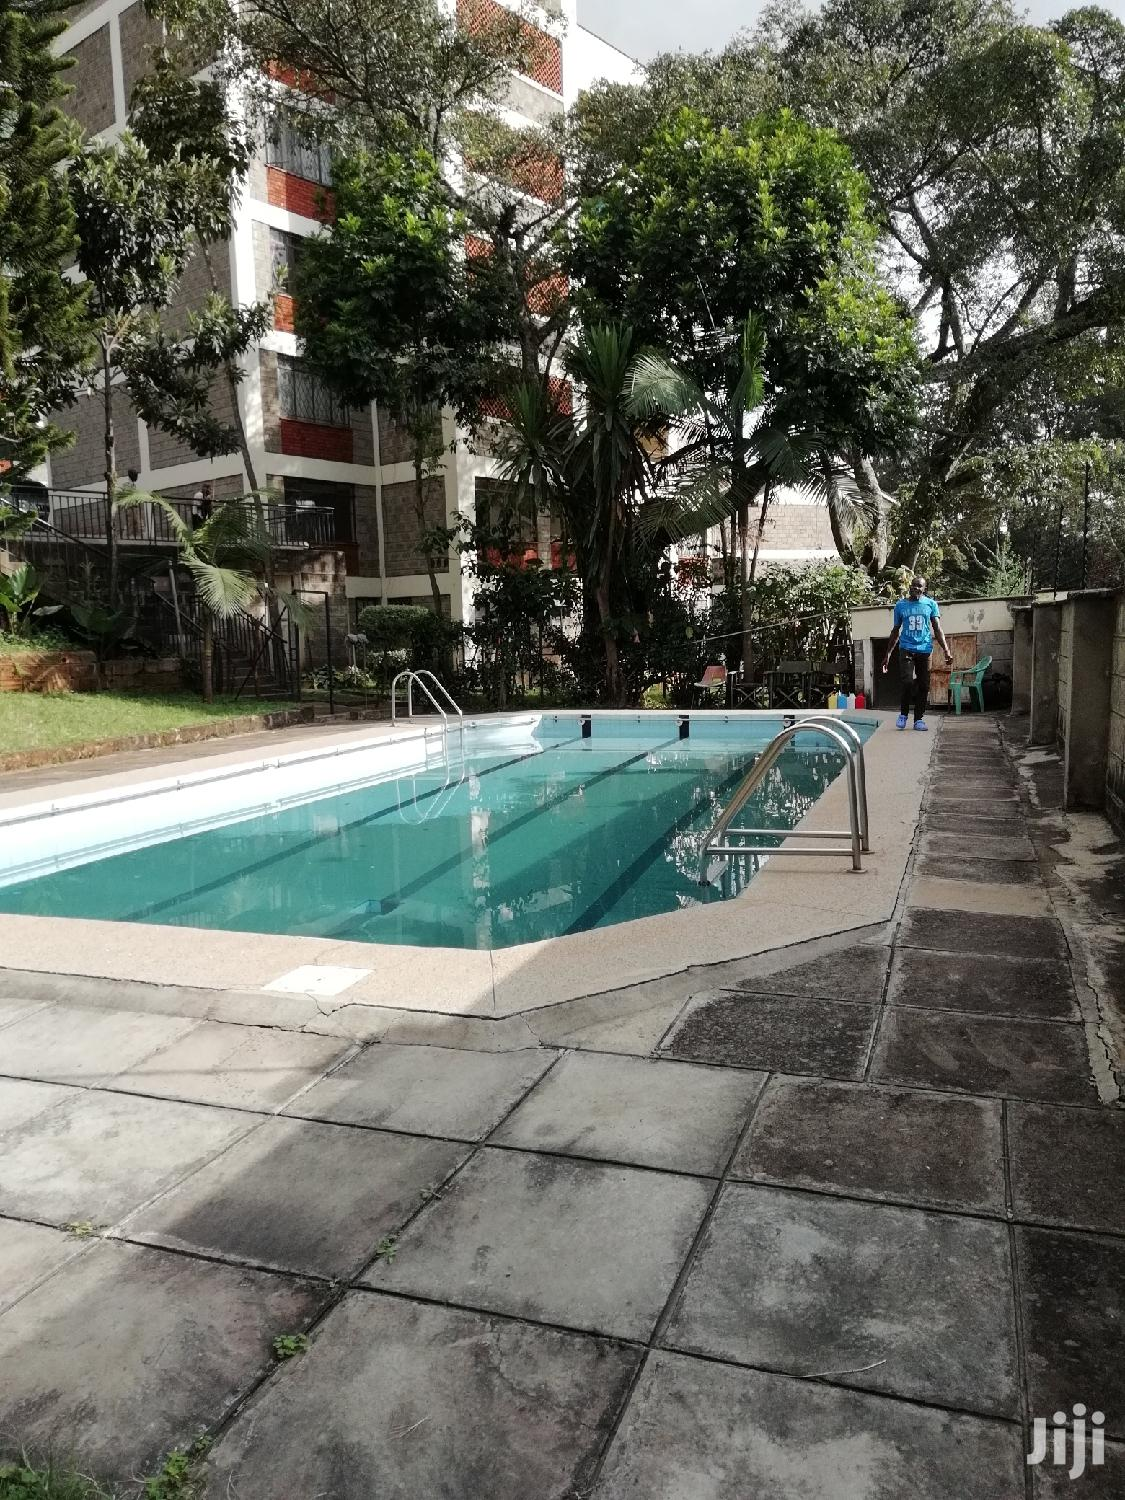 Property World,2/3br Apartment With Pool,Gym And Very Secure